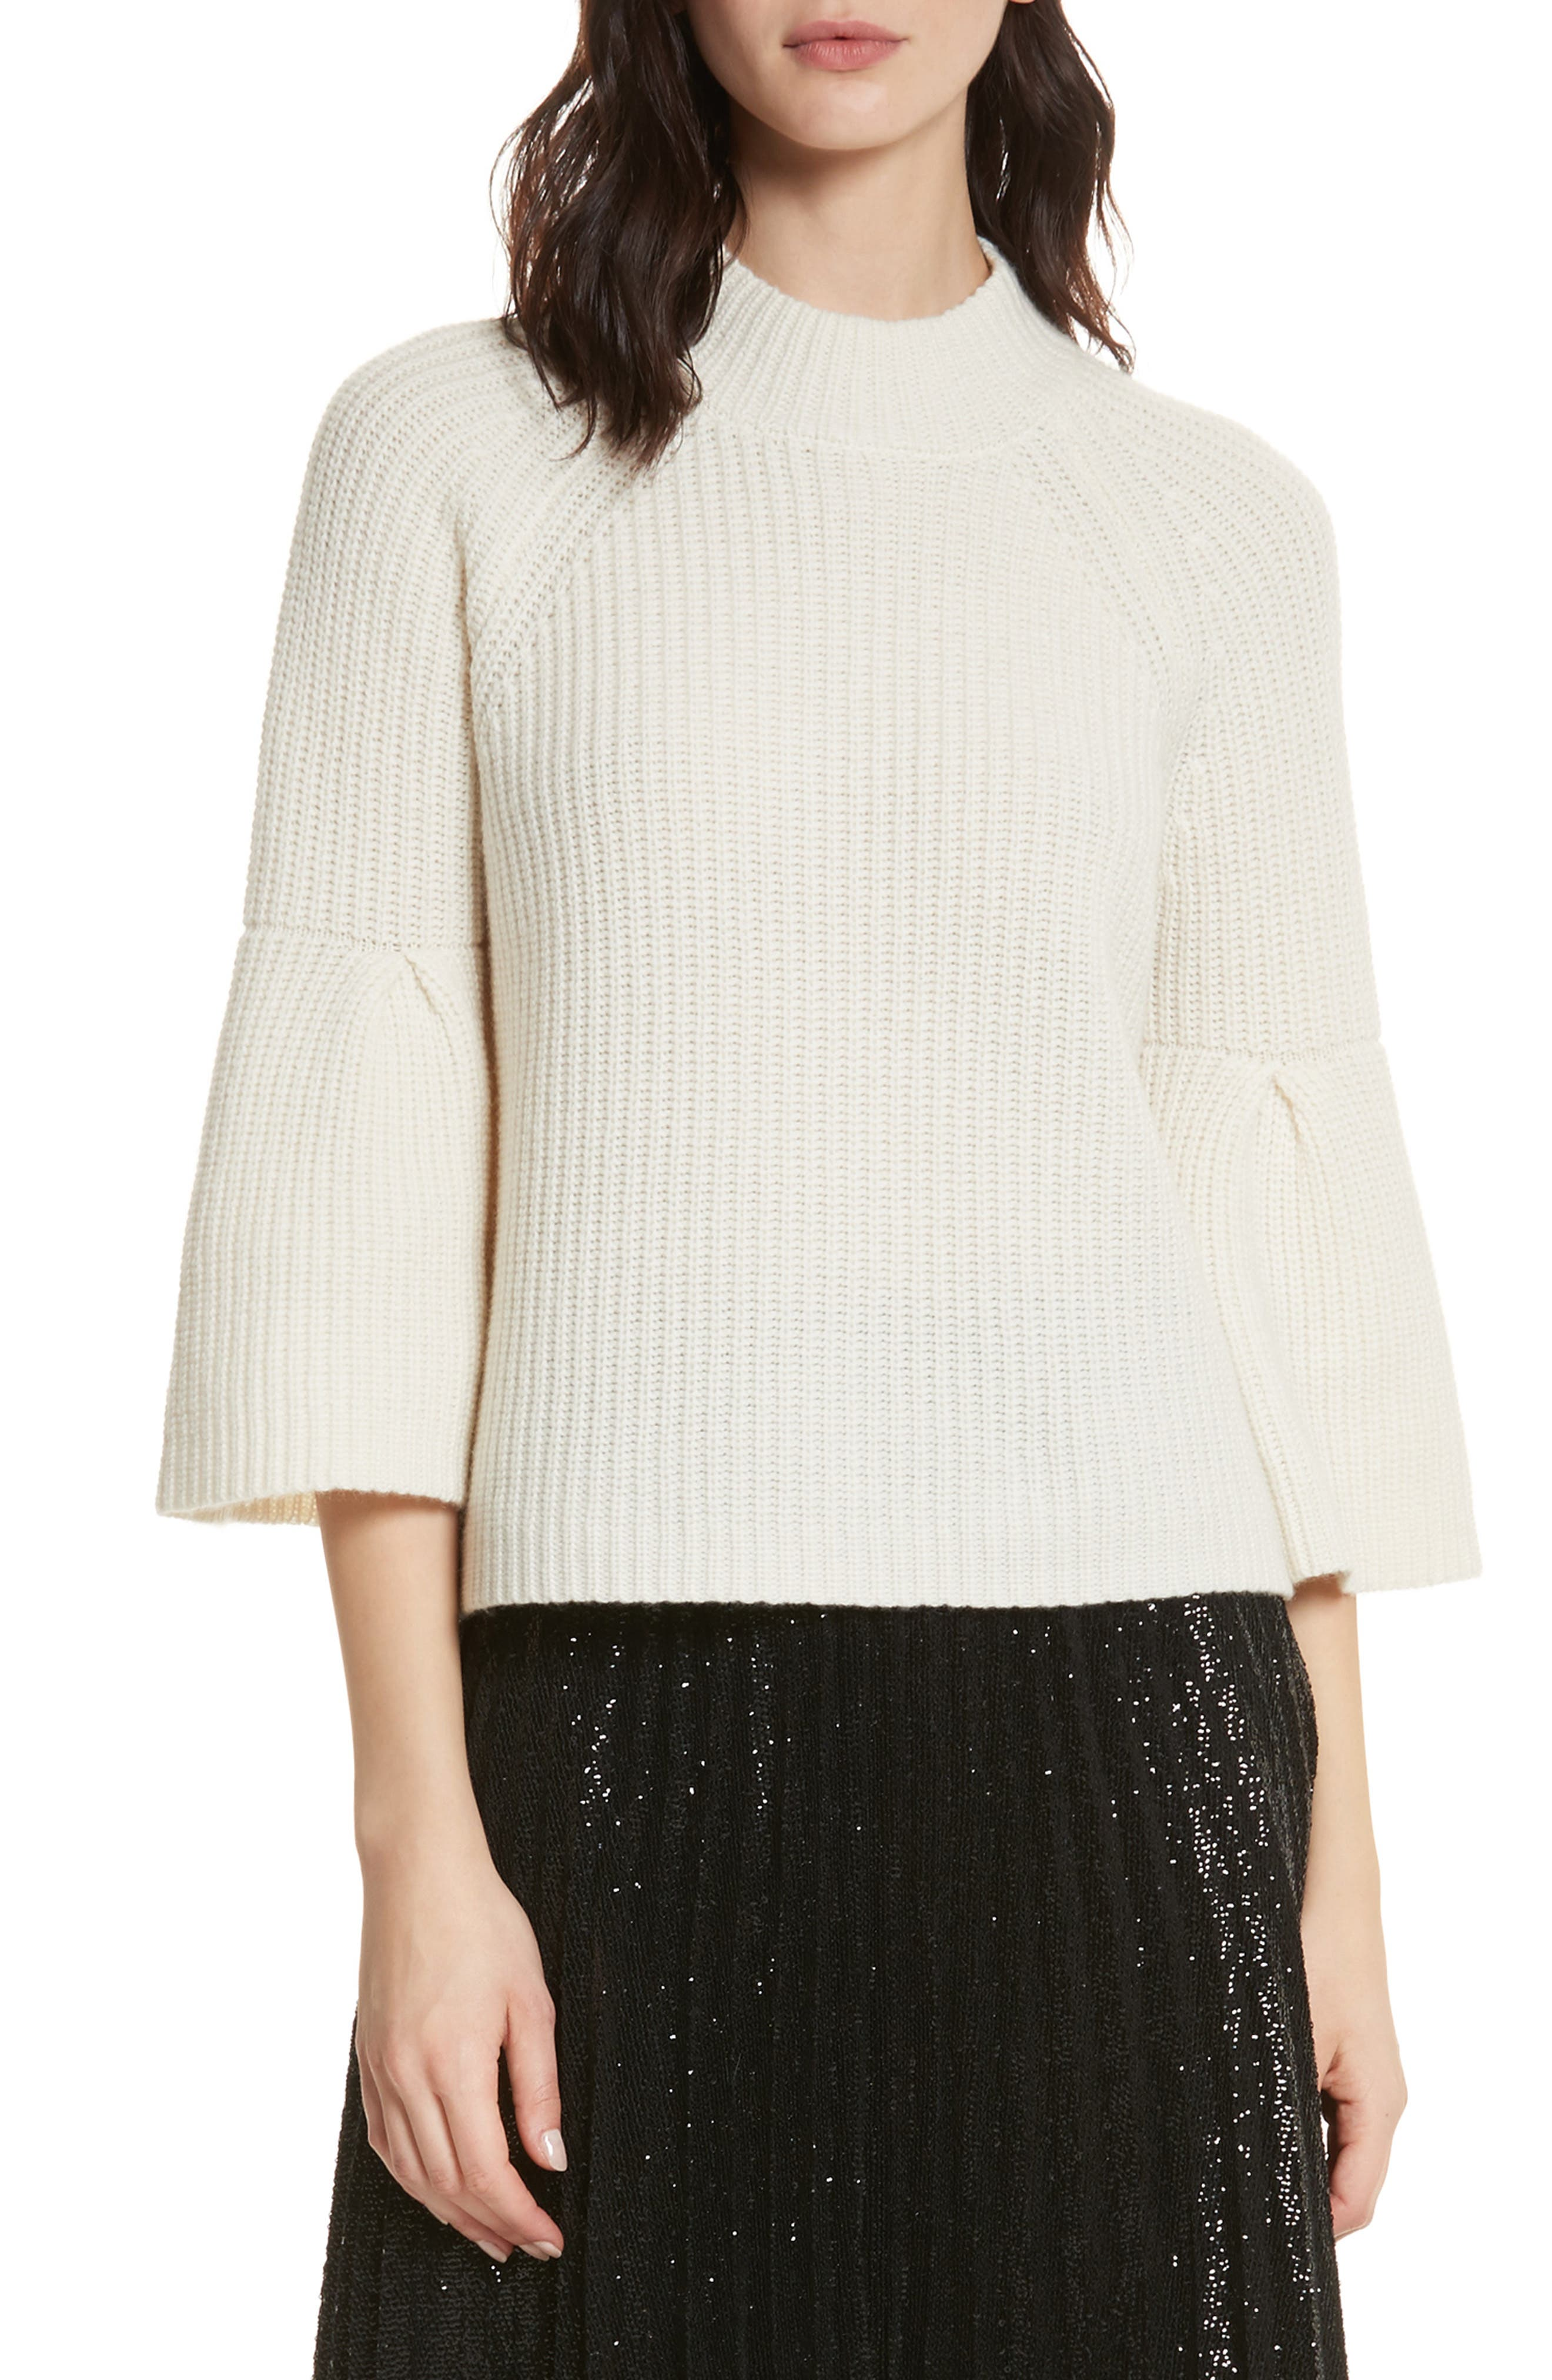 Ingrit Wool & Cashmere Sweater,                             Main thumbnail 1, color,                             114